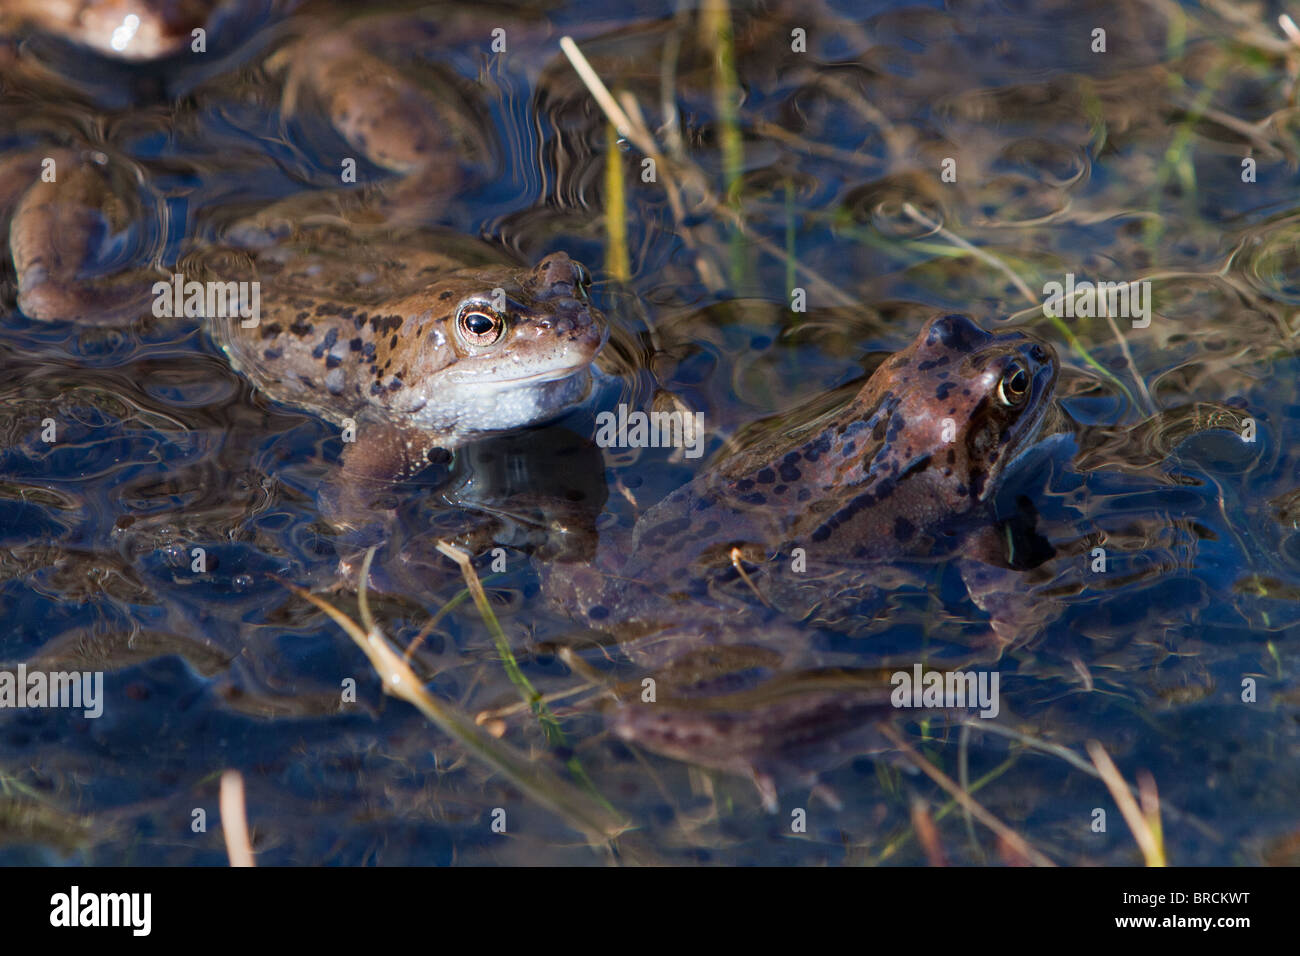 Common Frog,  Rana temporaria, spawning - Stock Image